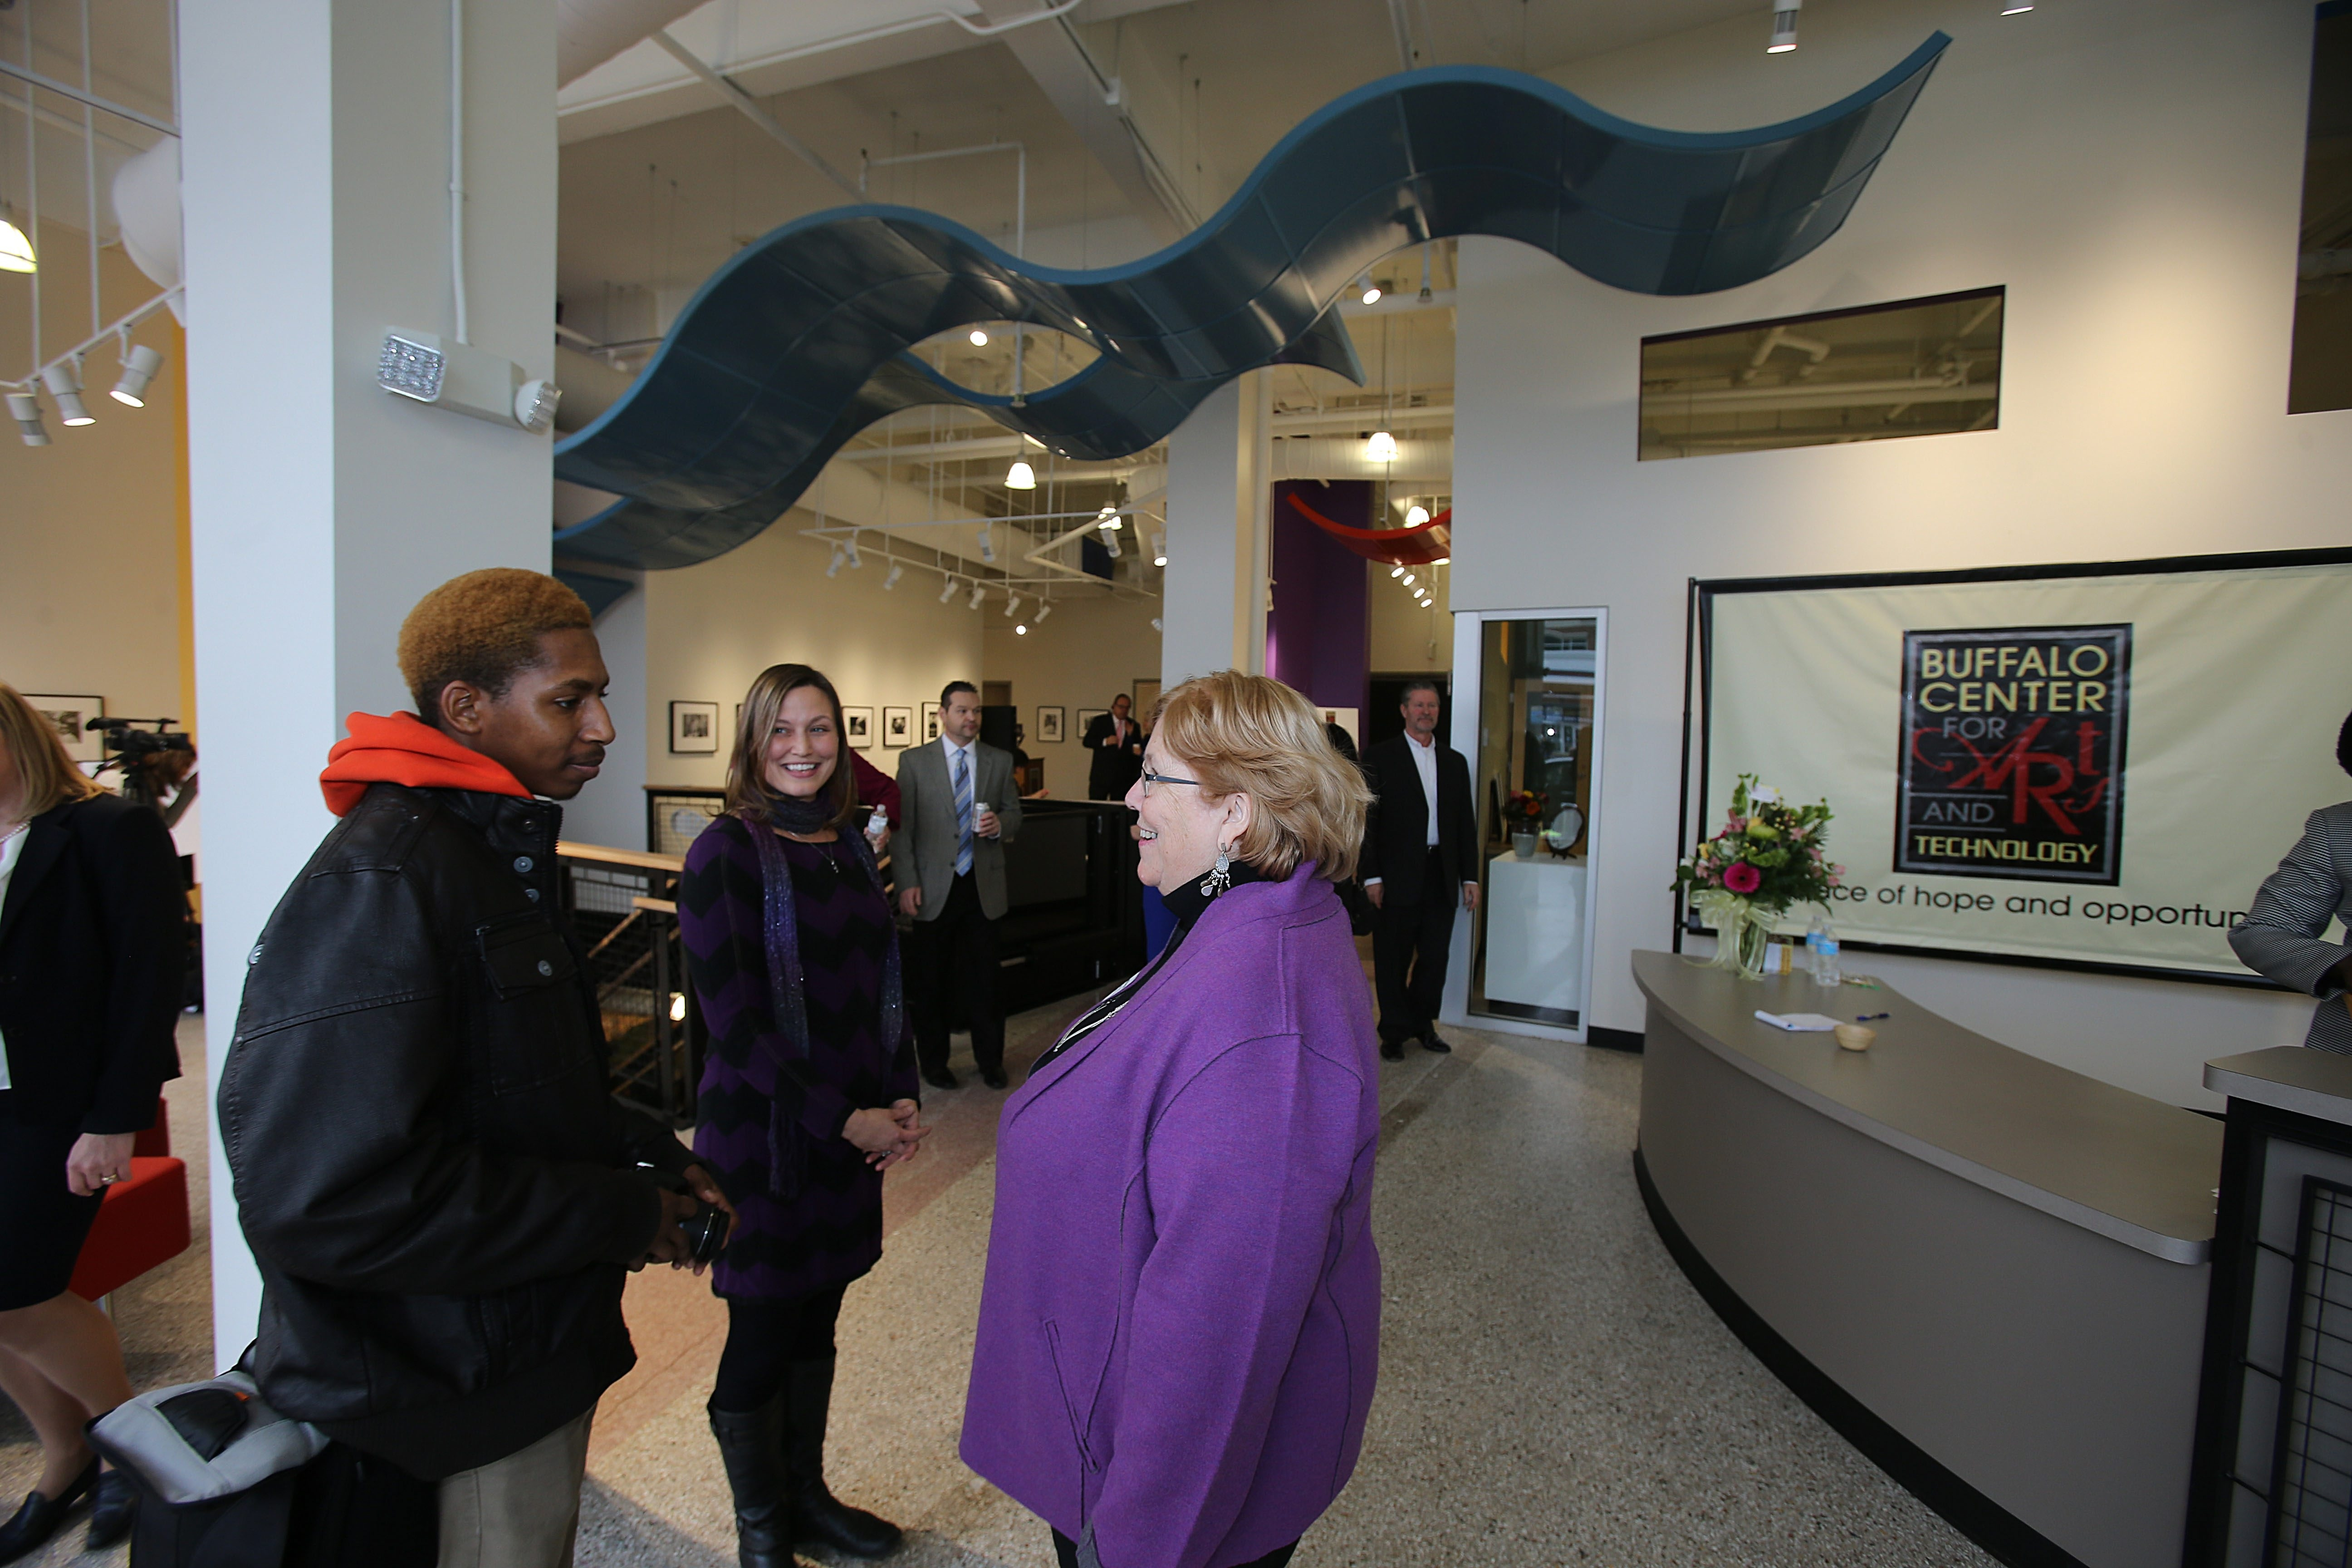 Executive Director Amber Dixon, right, chats with student Denard Hemphill, left, and Bennett High School teacher Ann Crittenden at the Buffalo Center for the Arts and Technology Friday. See a photo gallery of the center's grand opening at BuffaloNews.com.